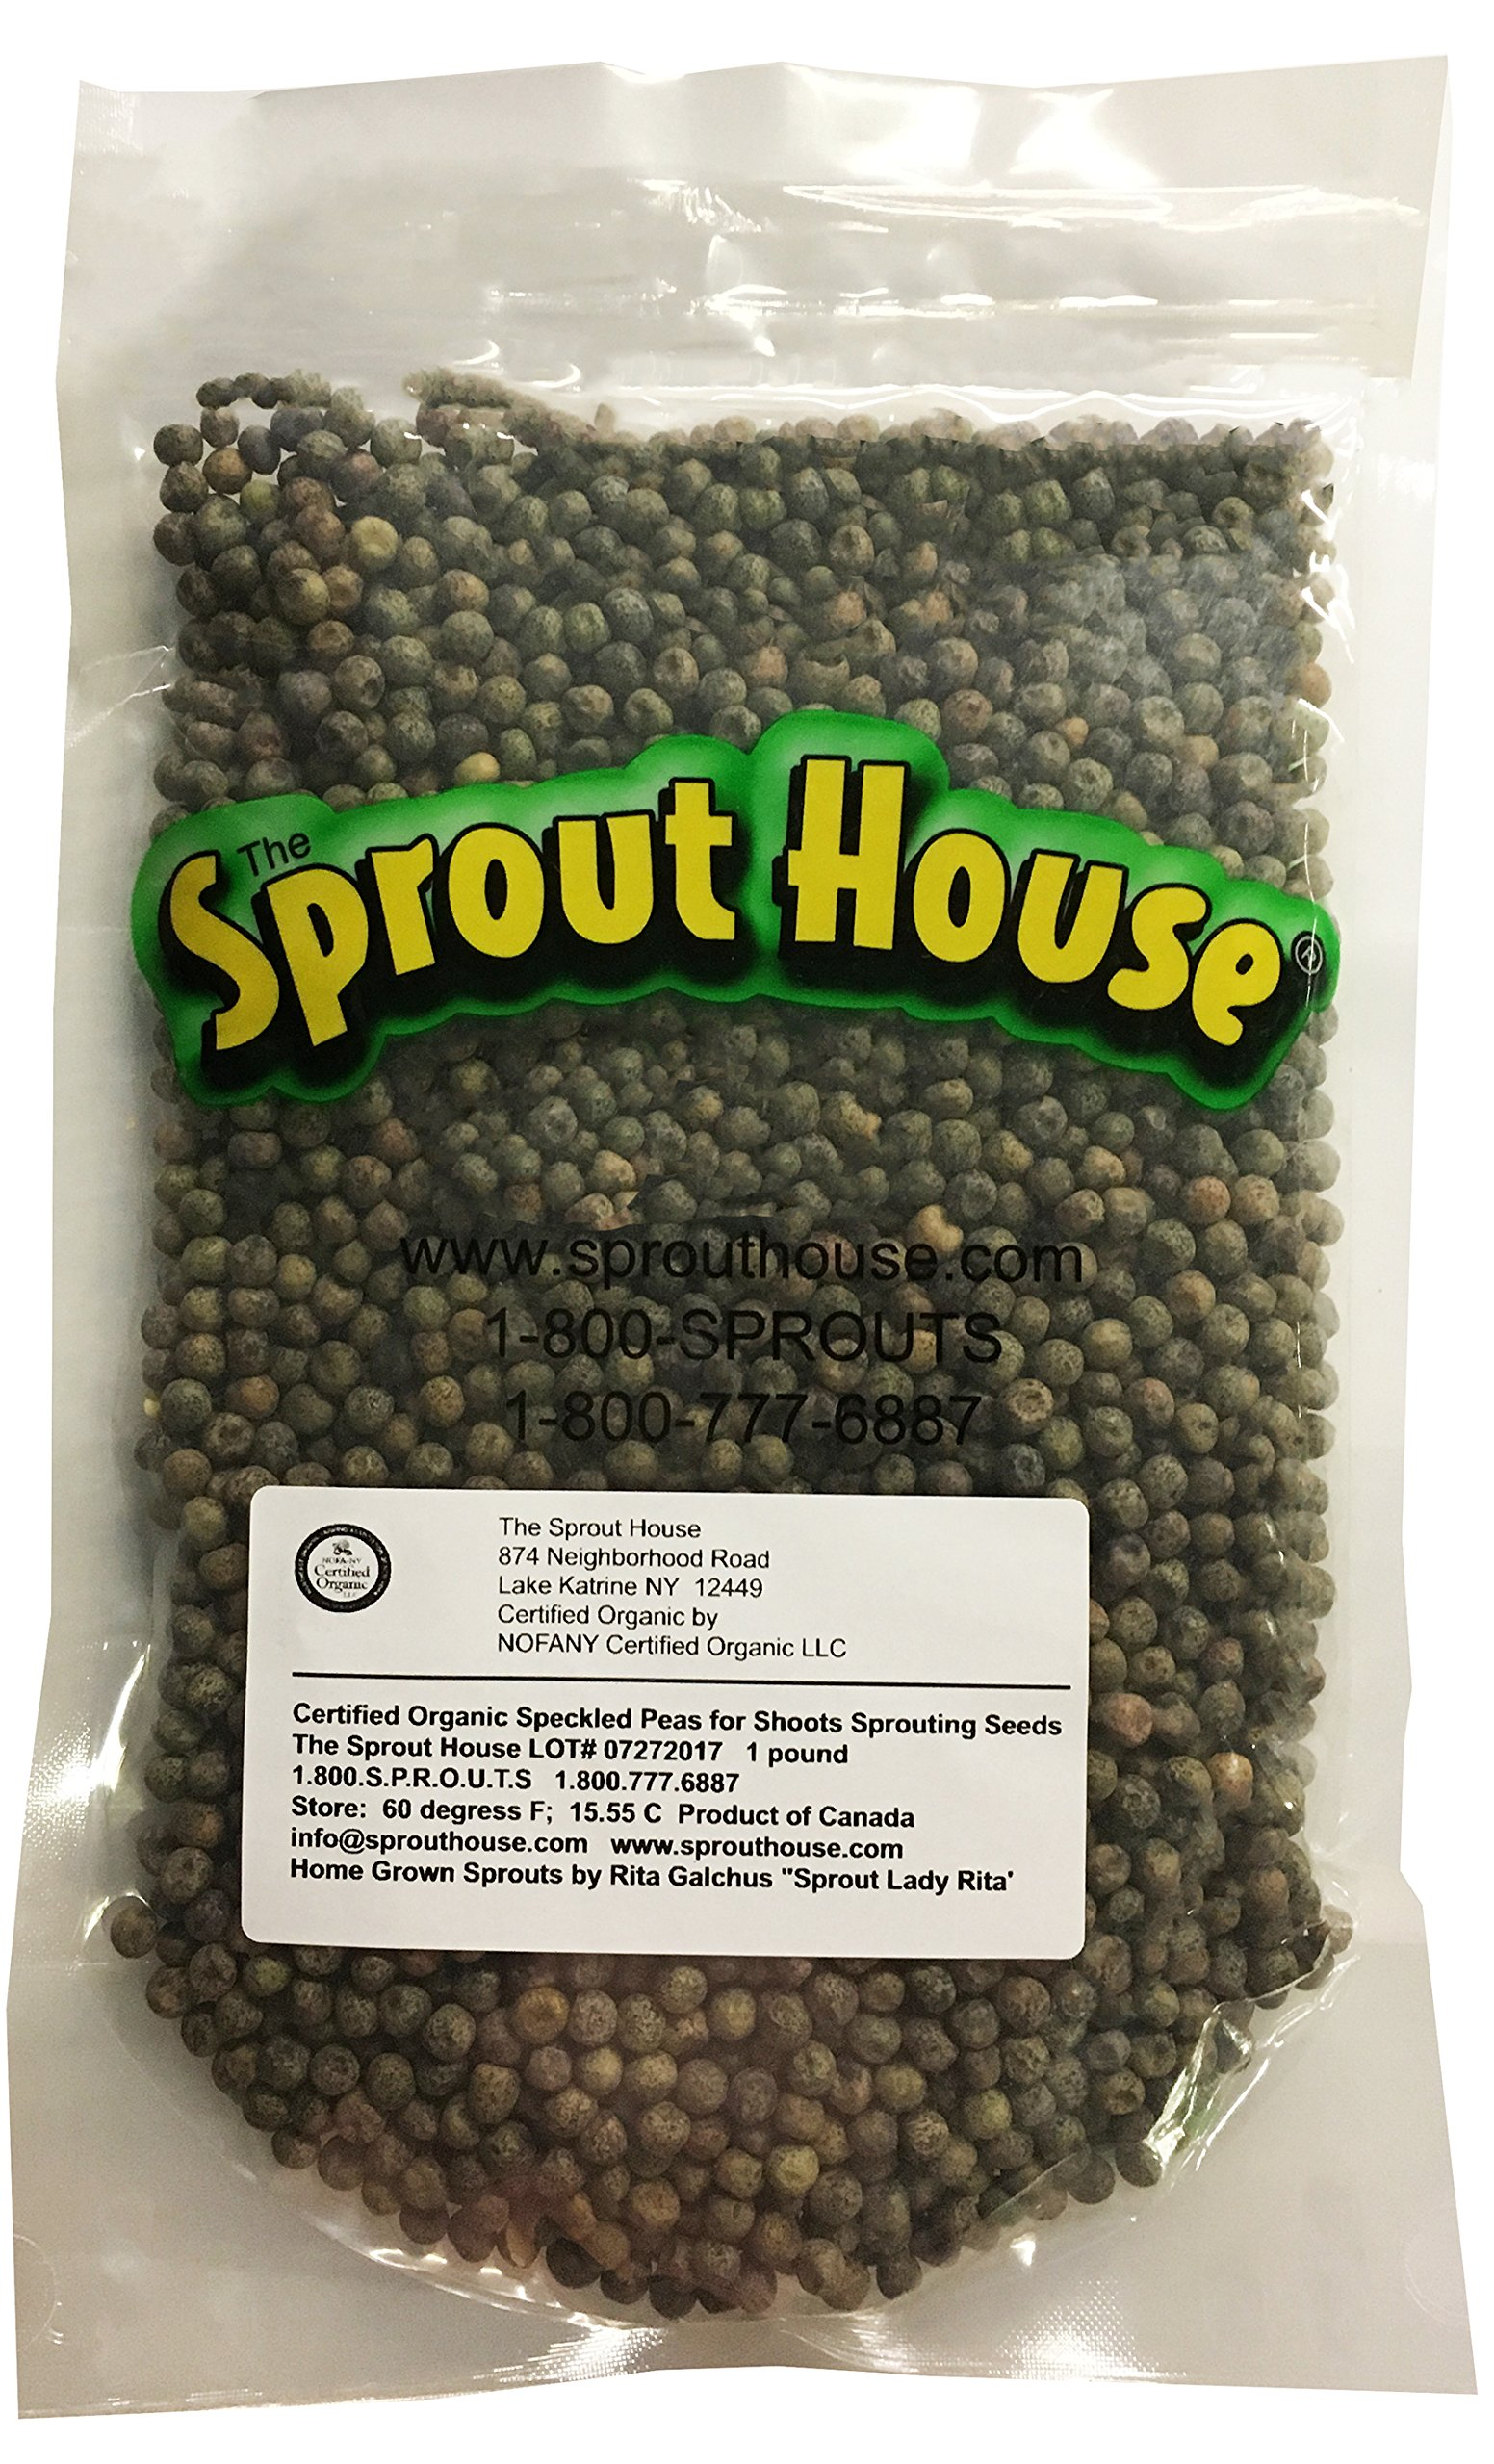 The Sprout House Certified Organic Non-gmo Sprouting Seeds Speckled Peas for Shoots 1 LB